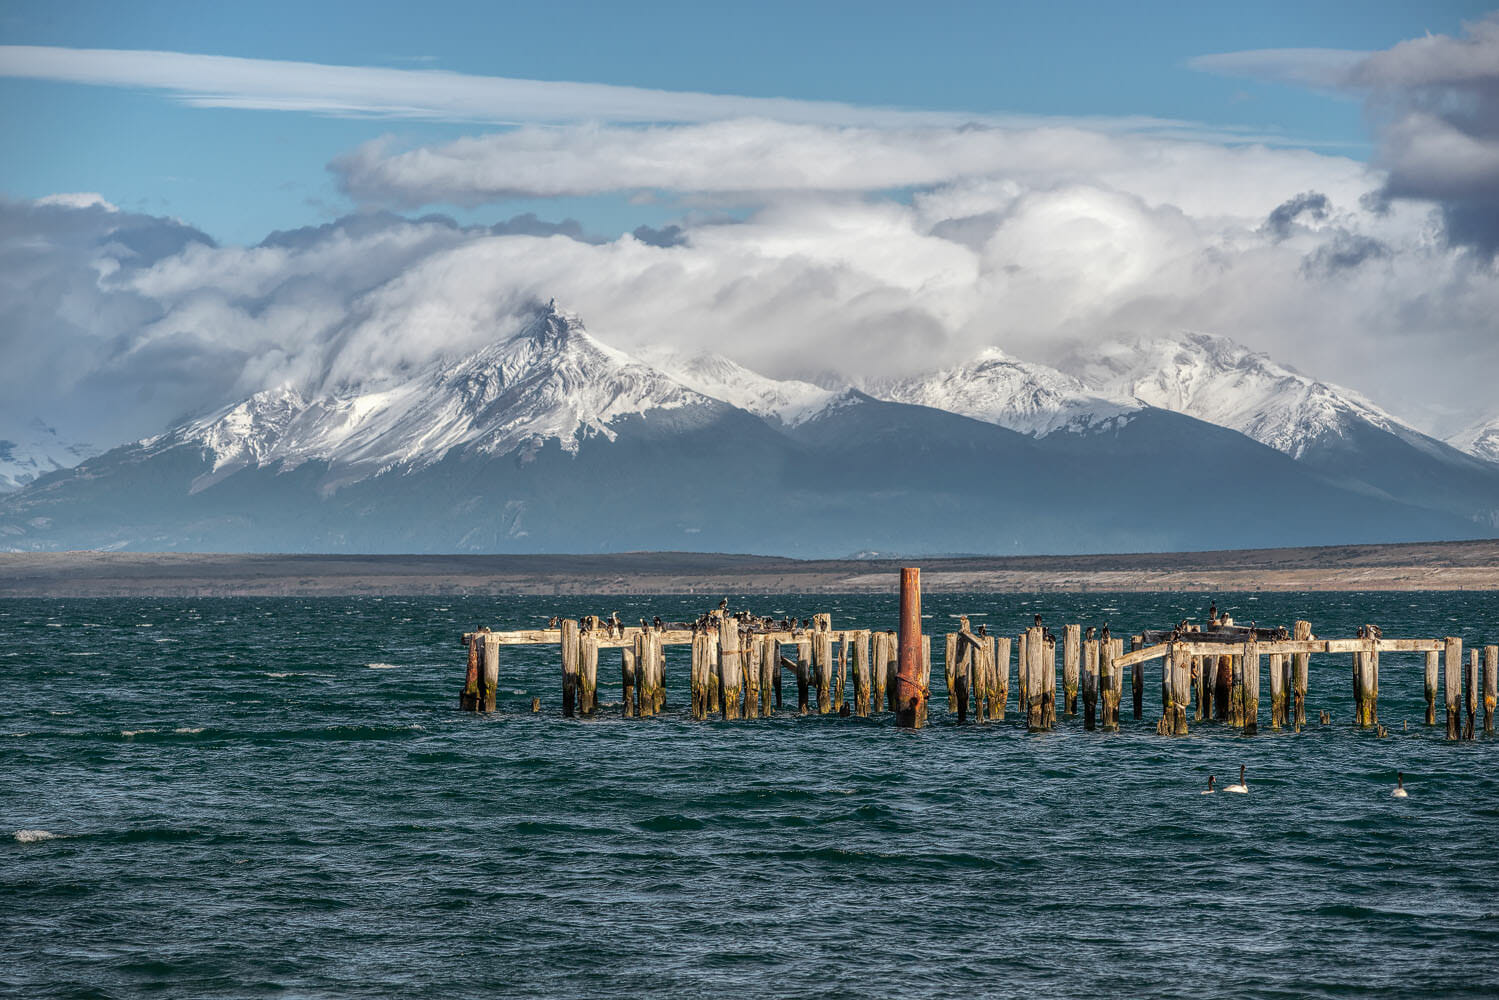 Braun & Blanchard pier in Puerto Natales and mountain range in the background